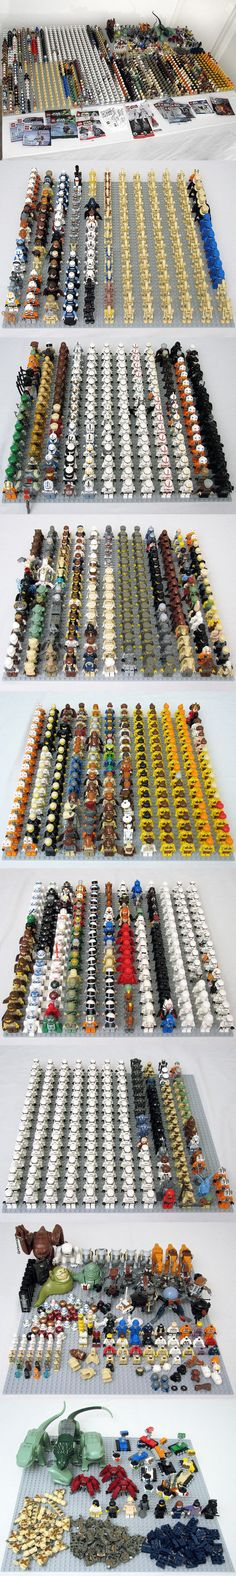 HUGE Star Wars minifigure (1220) collection! #StarWars #LEGO #minifigure